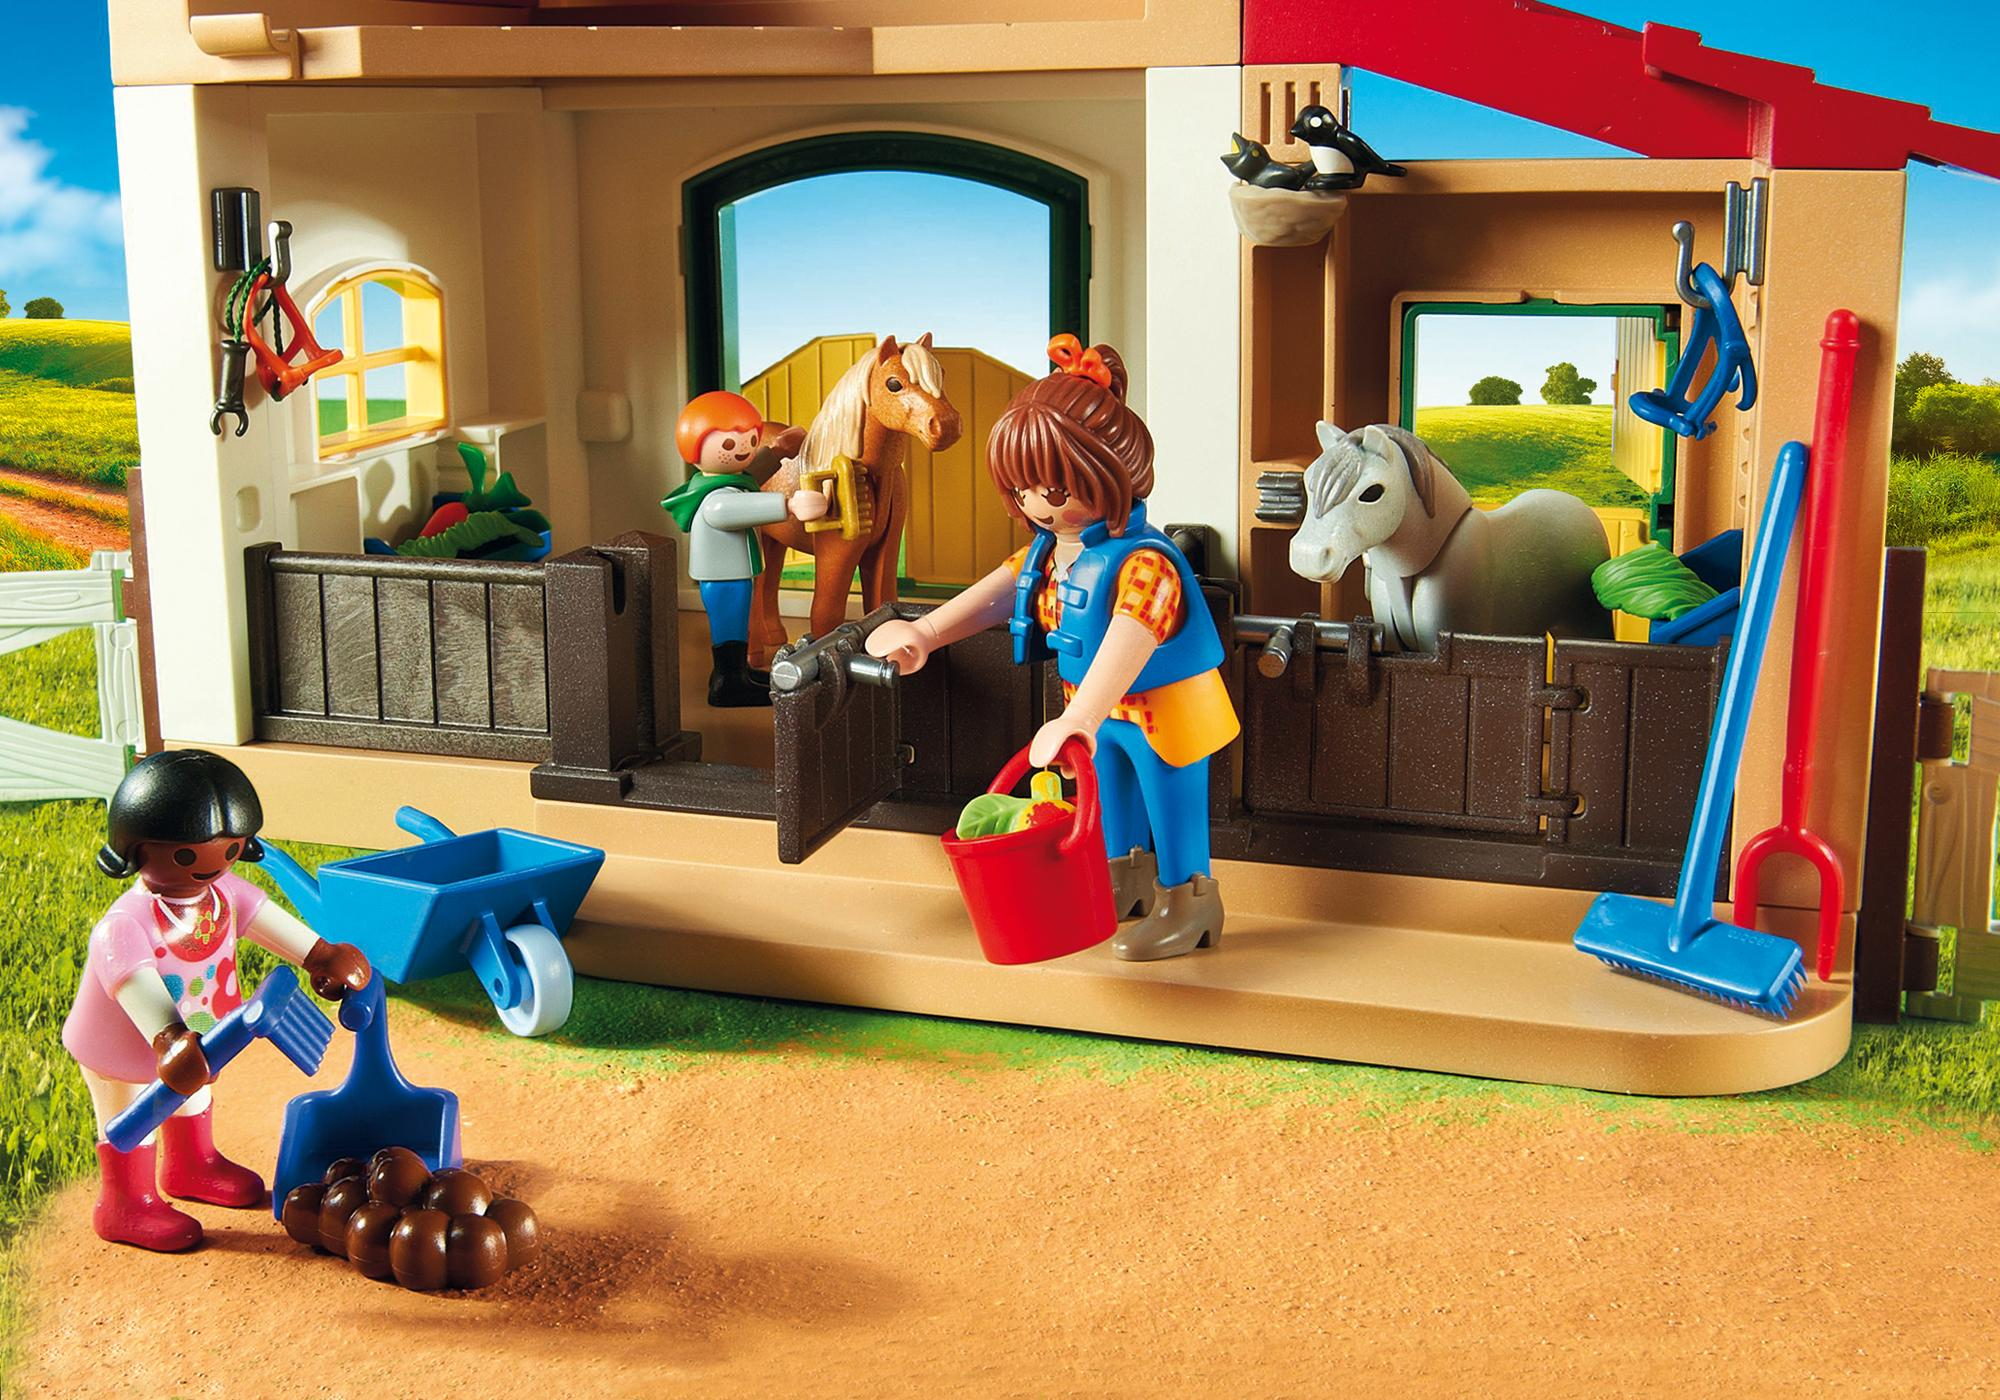 http://media.playmobil.com/i/playmobil/6927_product_extra3